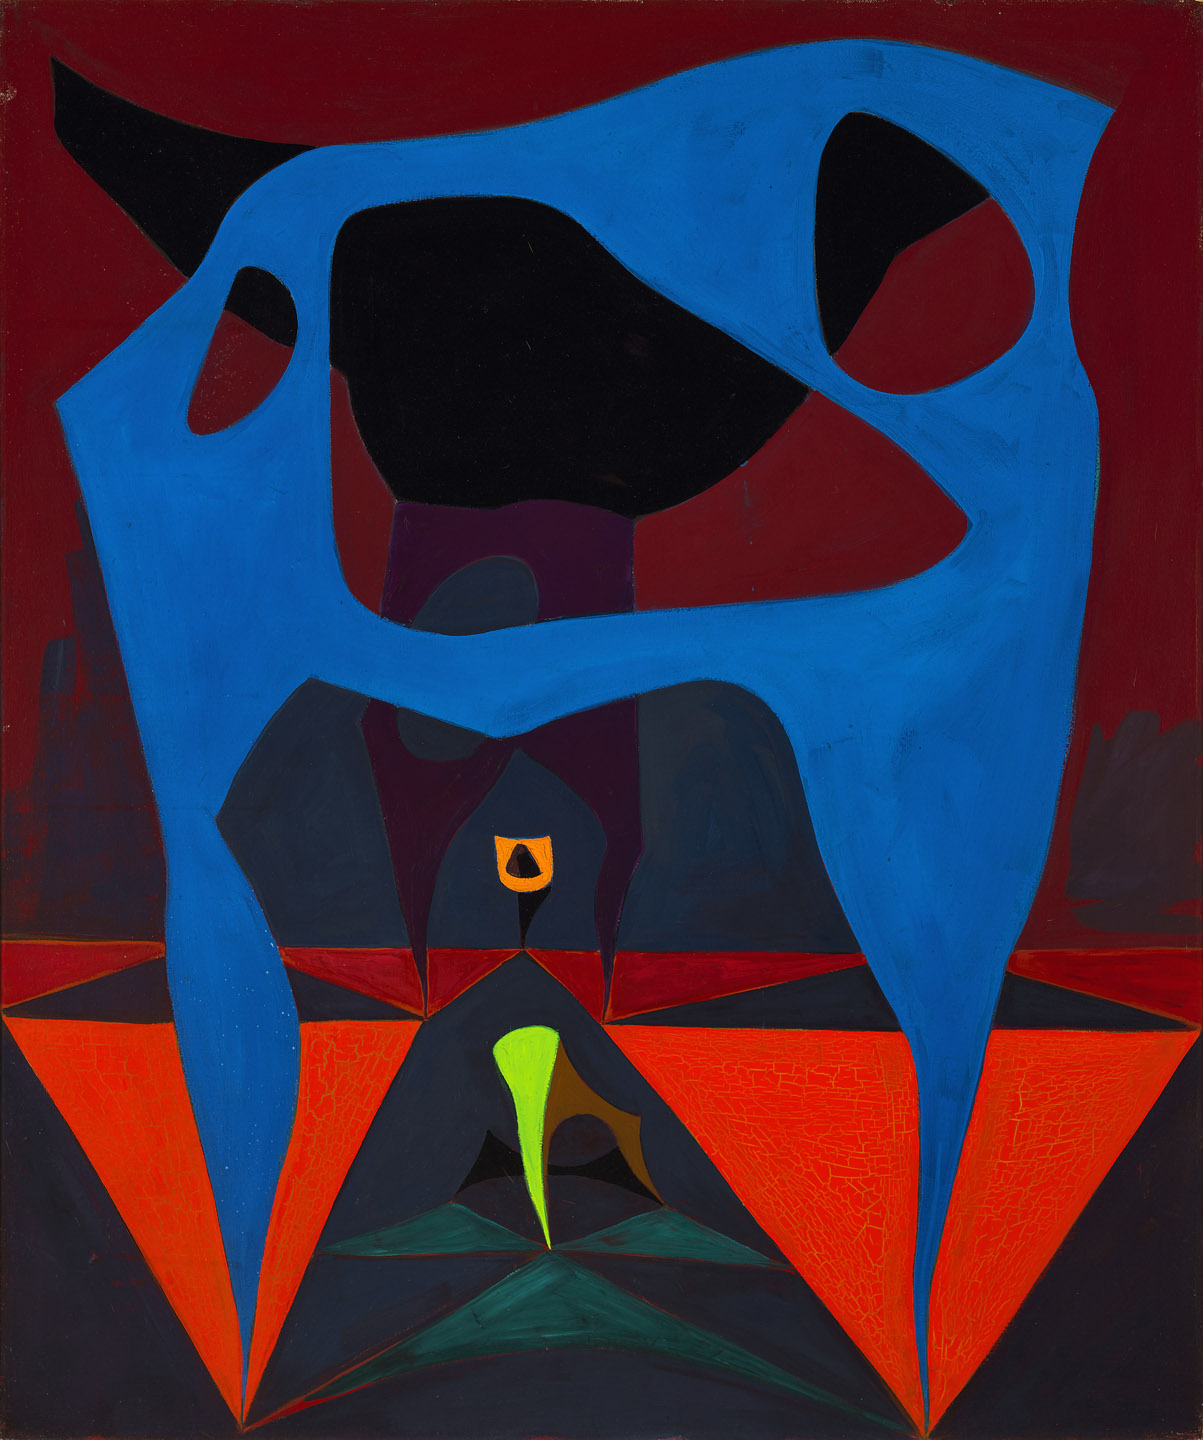 Untitled, Magical Forms (study) , 1950  oil on canvas 36 x 30 inches; 91.4 x 76.2 centimeters